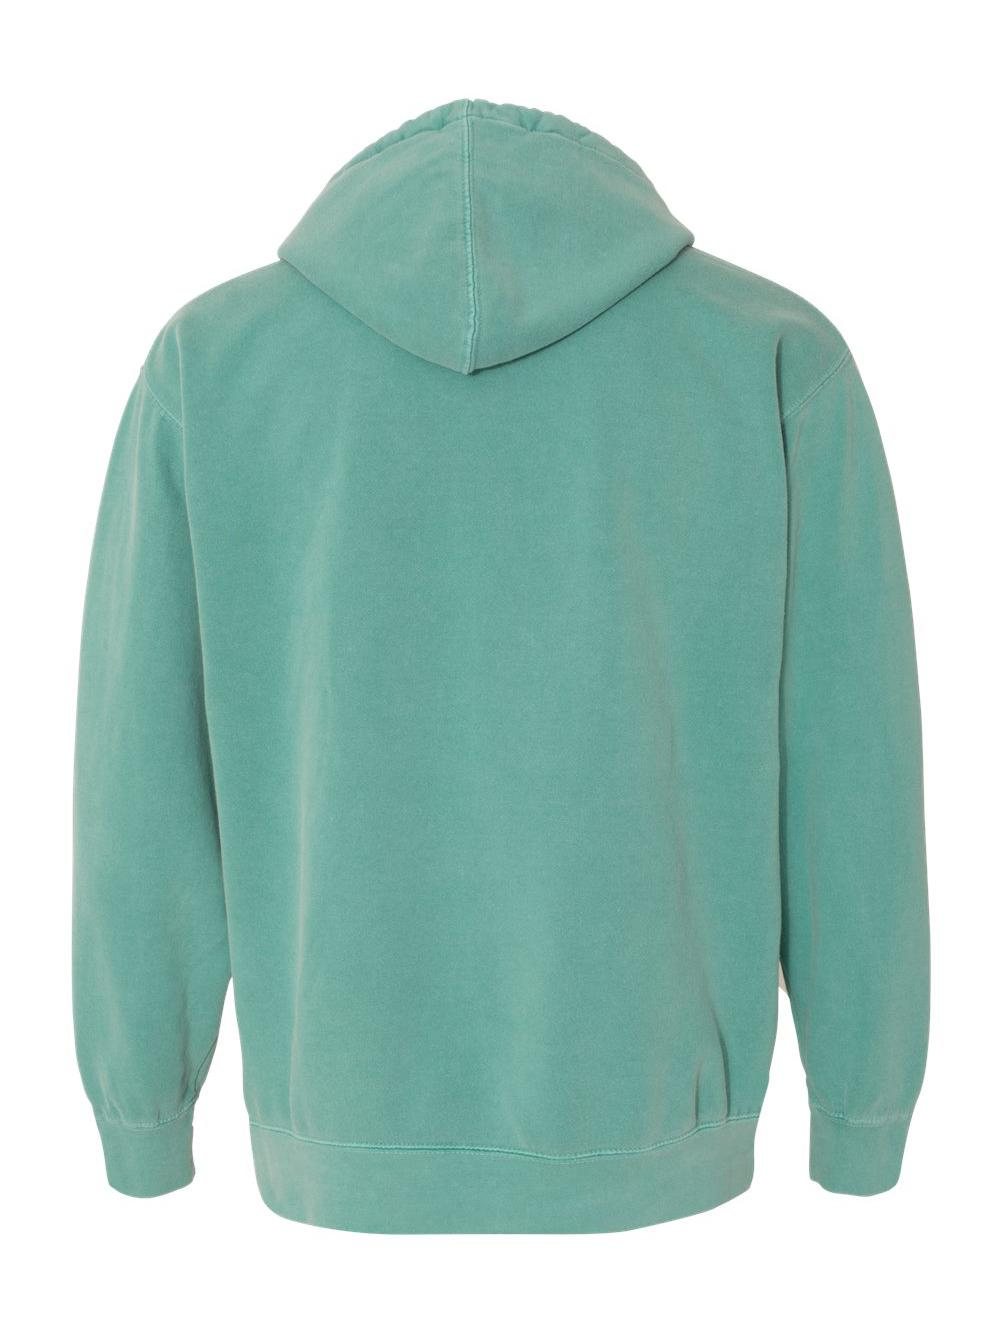 Comfort-Colors-Garment-Dyed-Hooded-Pullover-Sweatshirt-1567 thumbnail 30